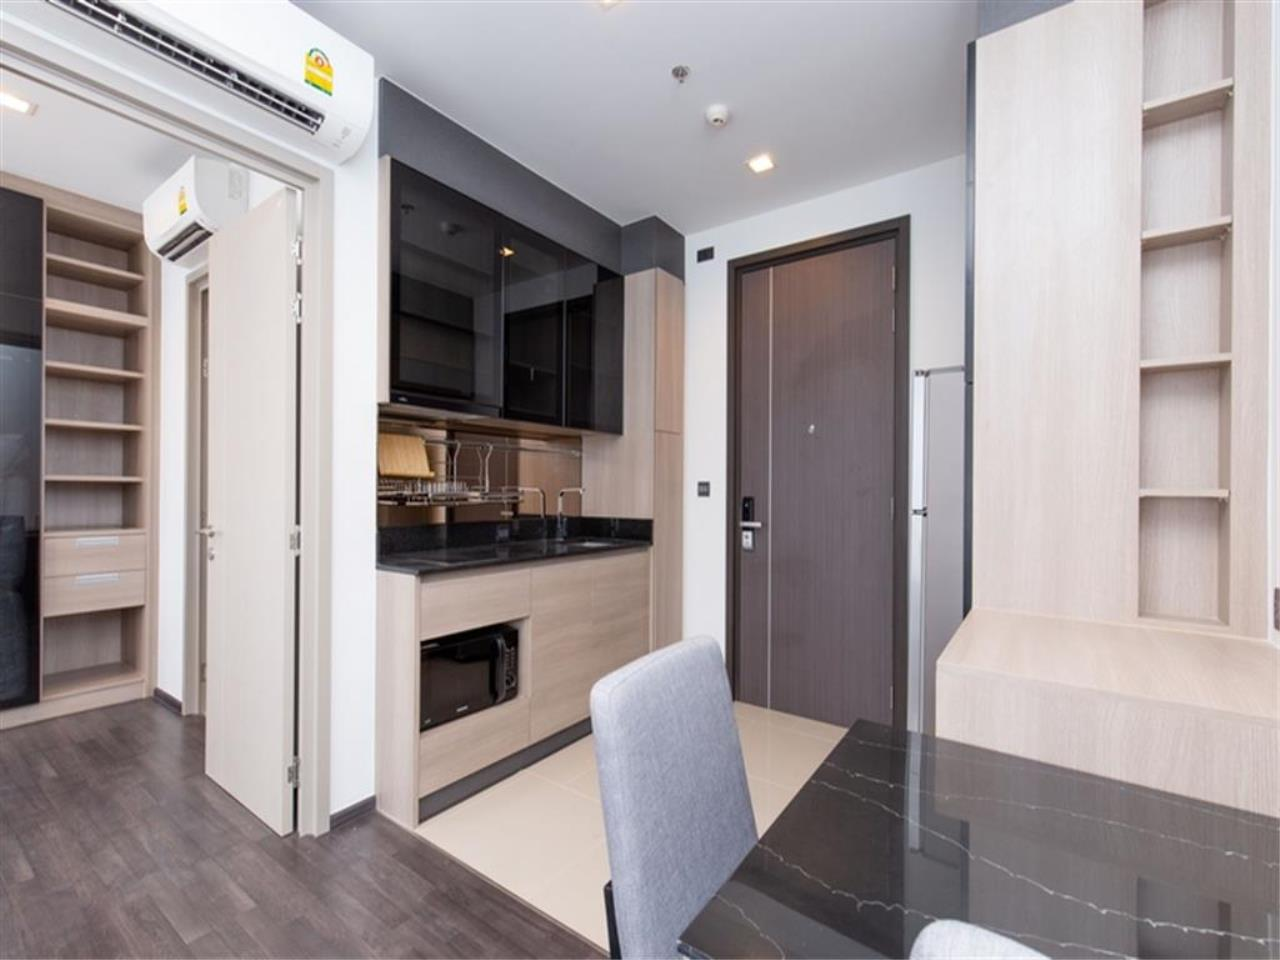 Plus Property Agency's Rent : CD190987 THE LINE ASOKE-RATCHADA Condominium New Petchburi - Rama 9 Bangkok 10